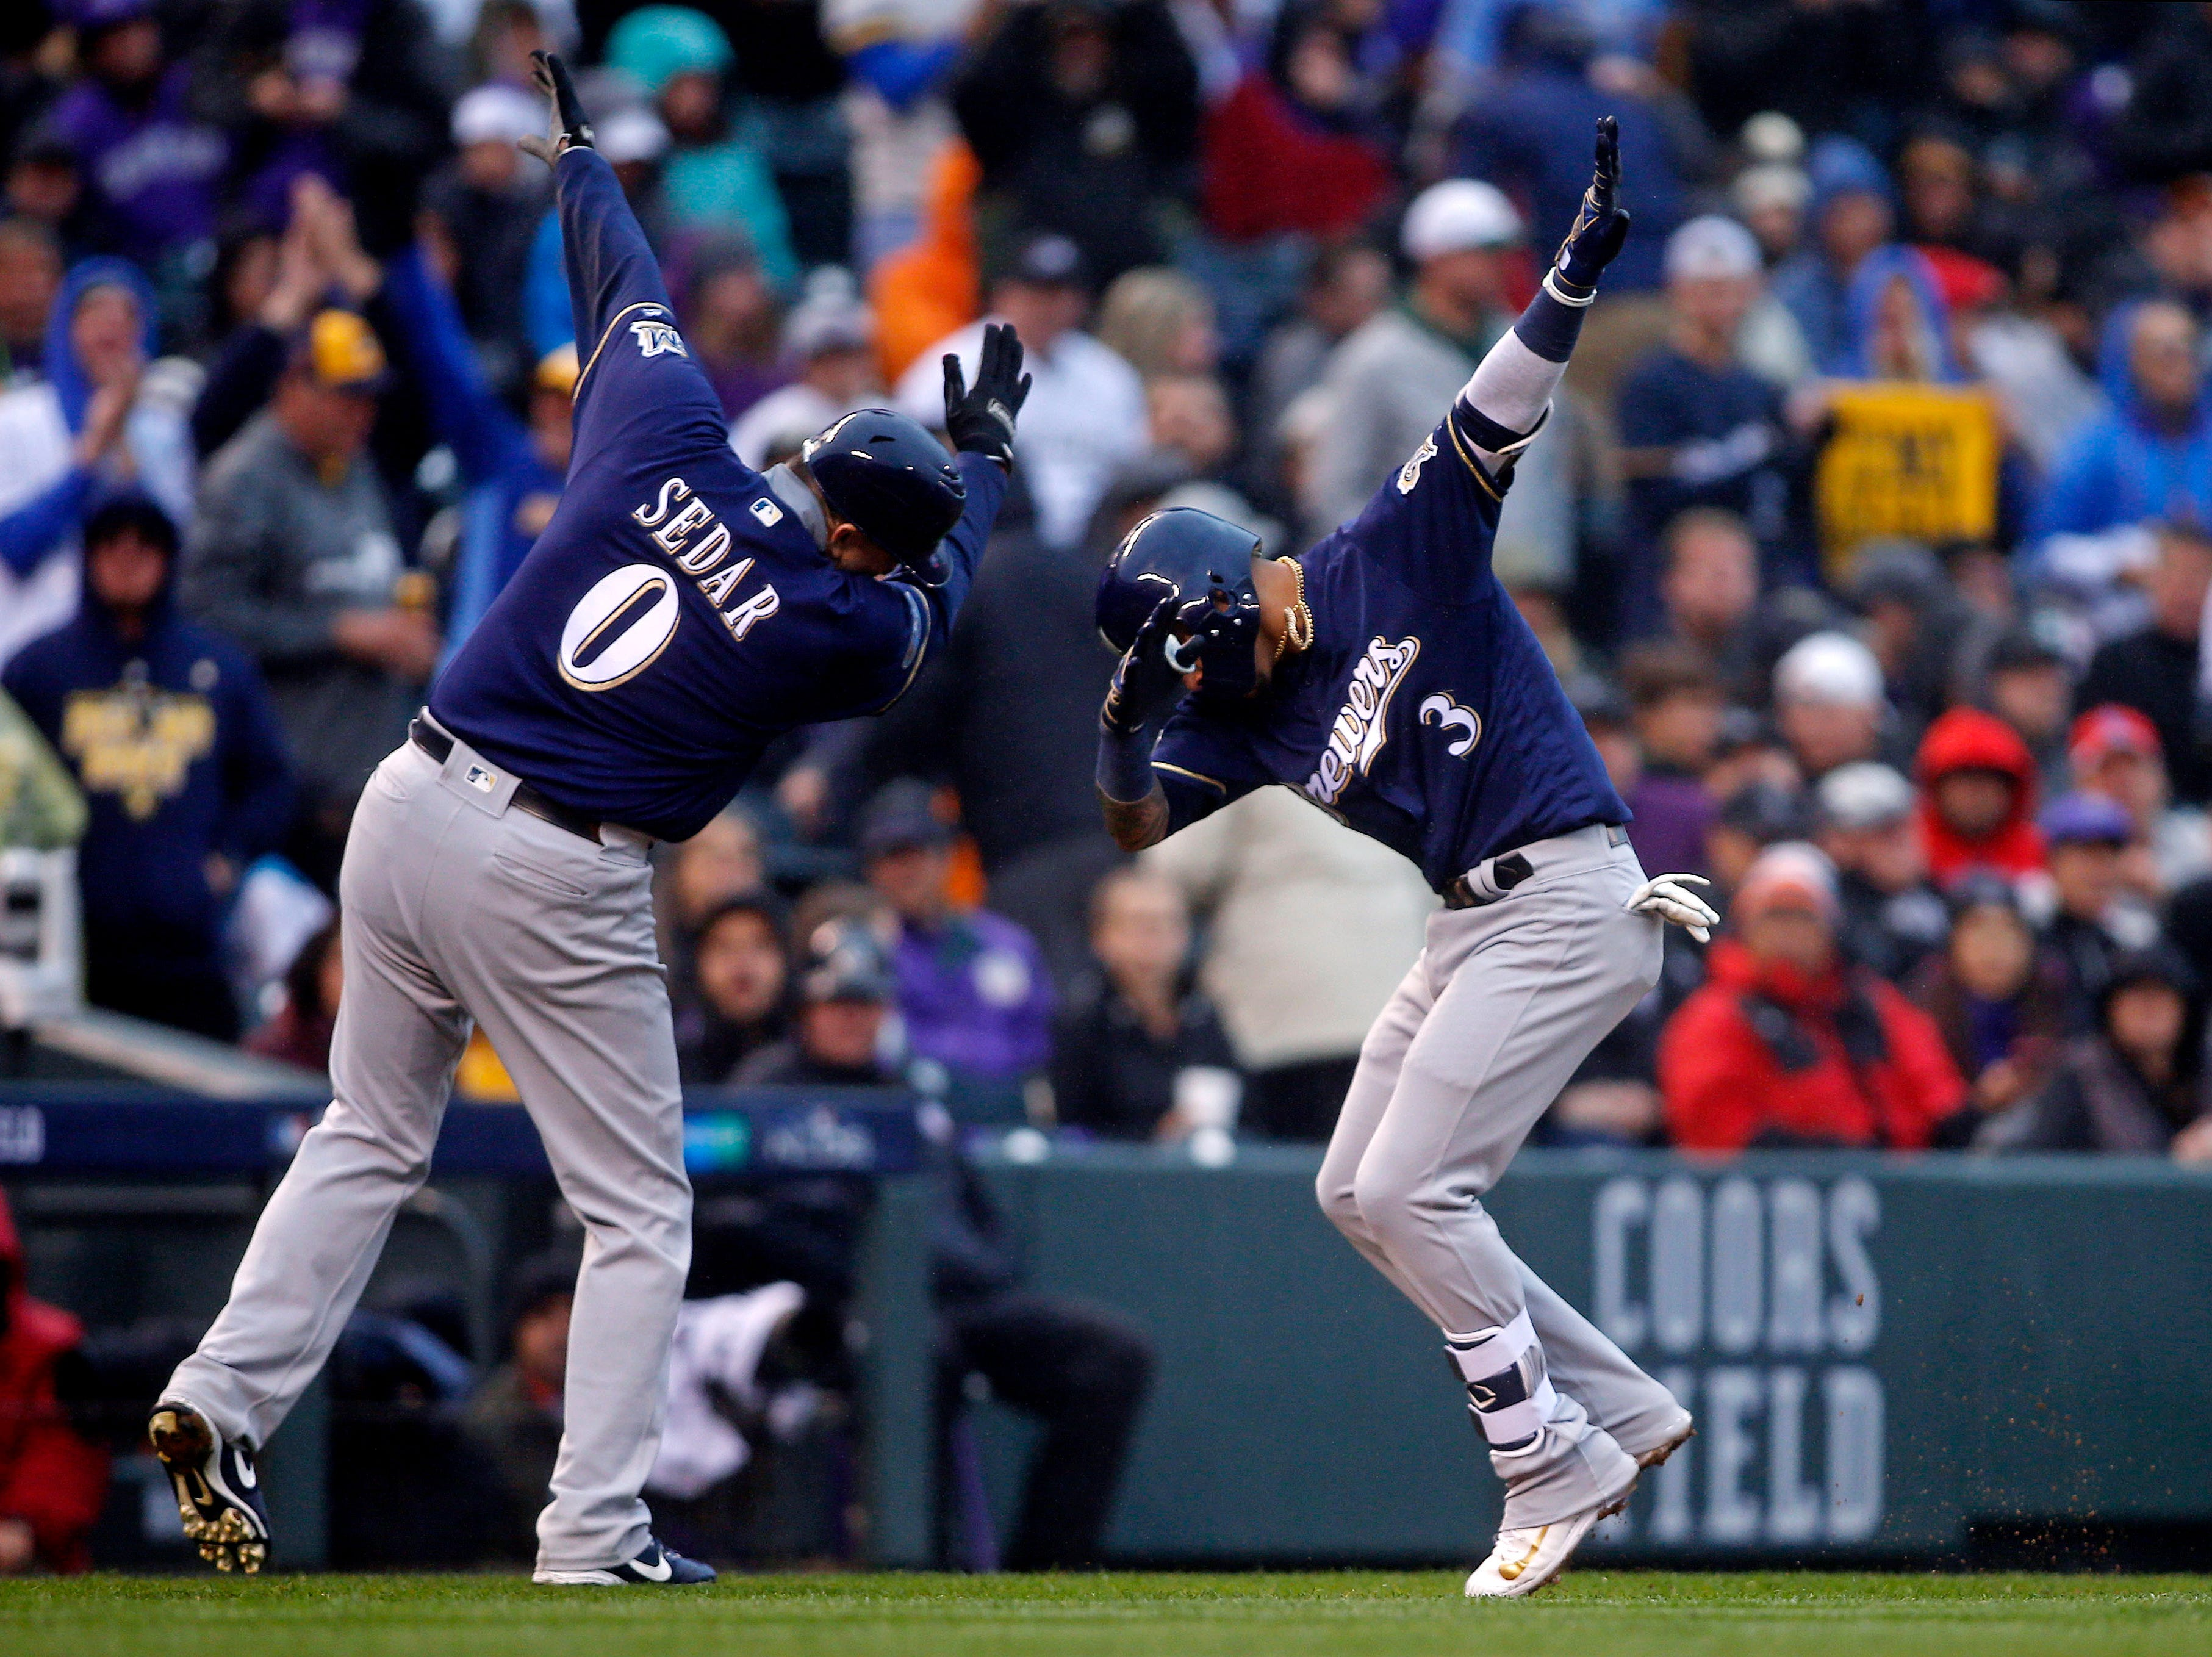 NLDS Game 3: Brewers shortstop Orlando Arcia celebrates his home run in the ninth inning with third base coach Ed Sedar.